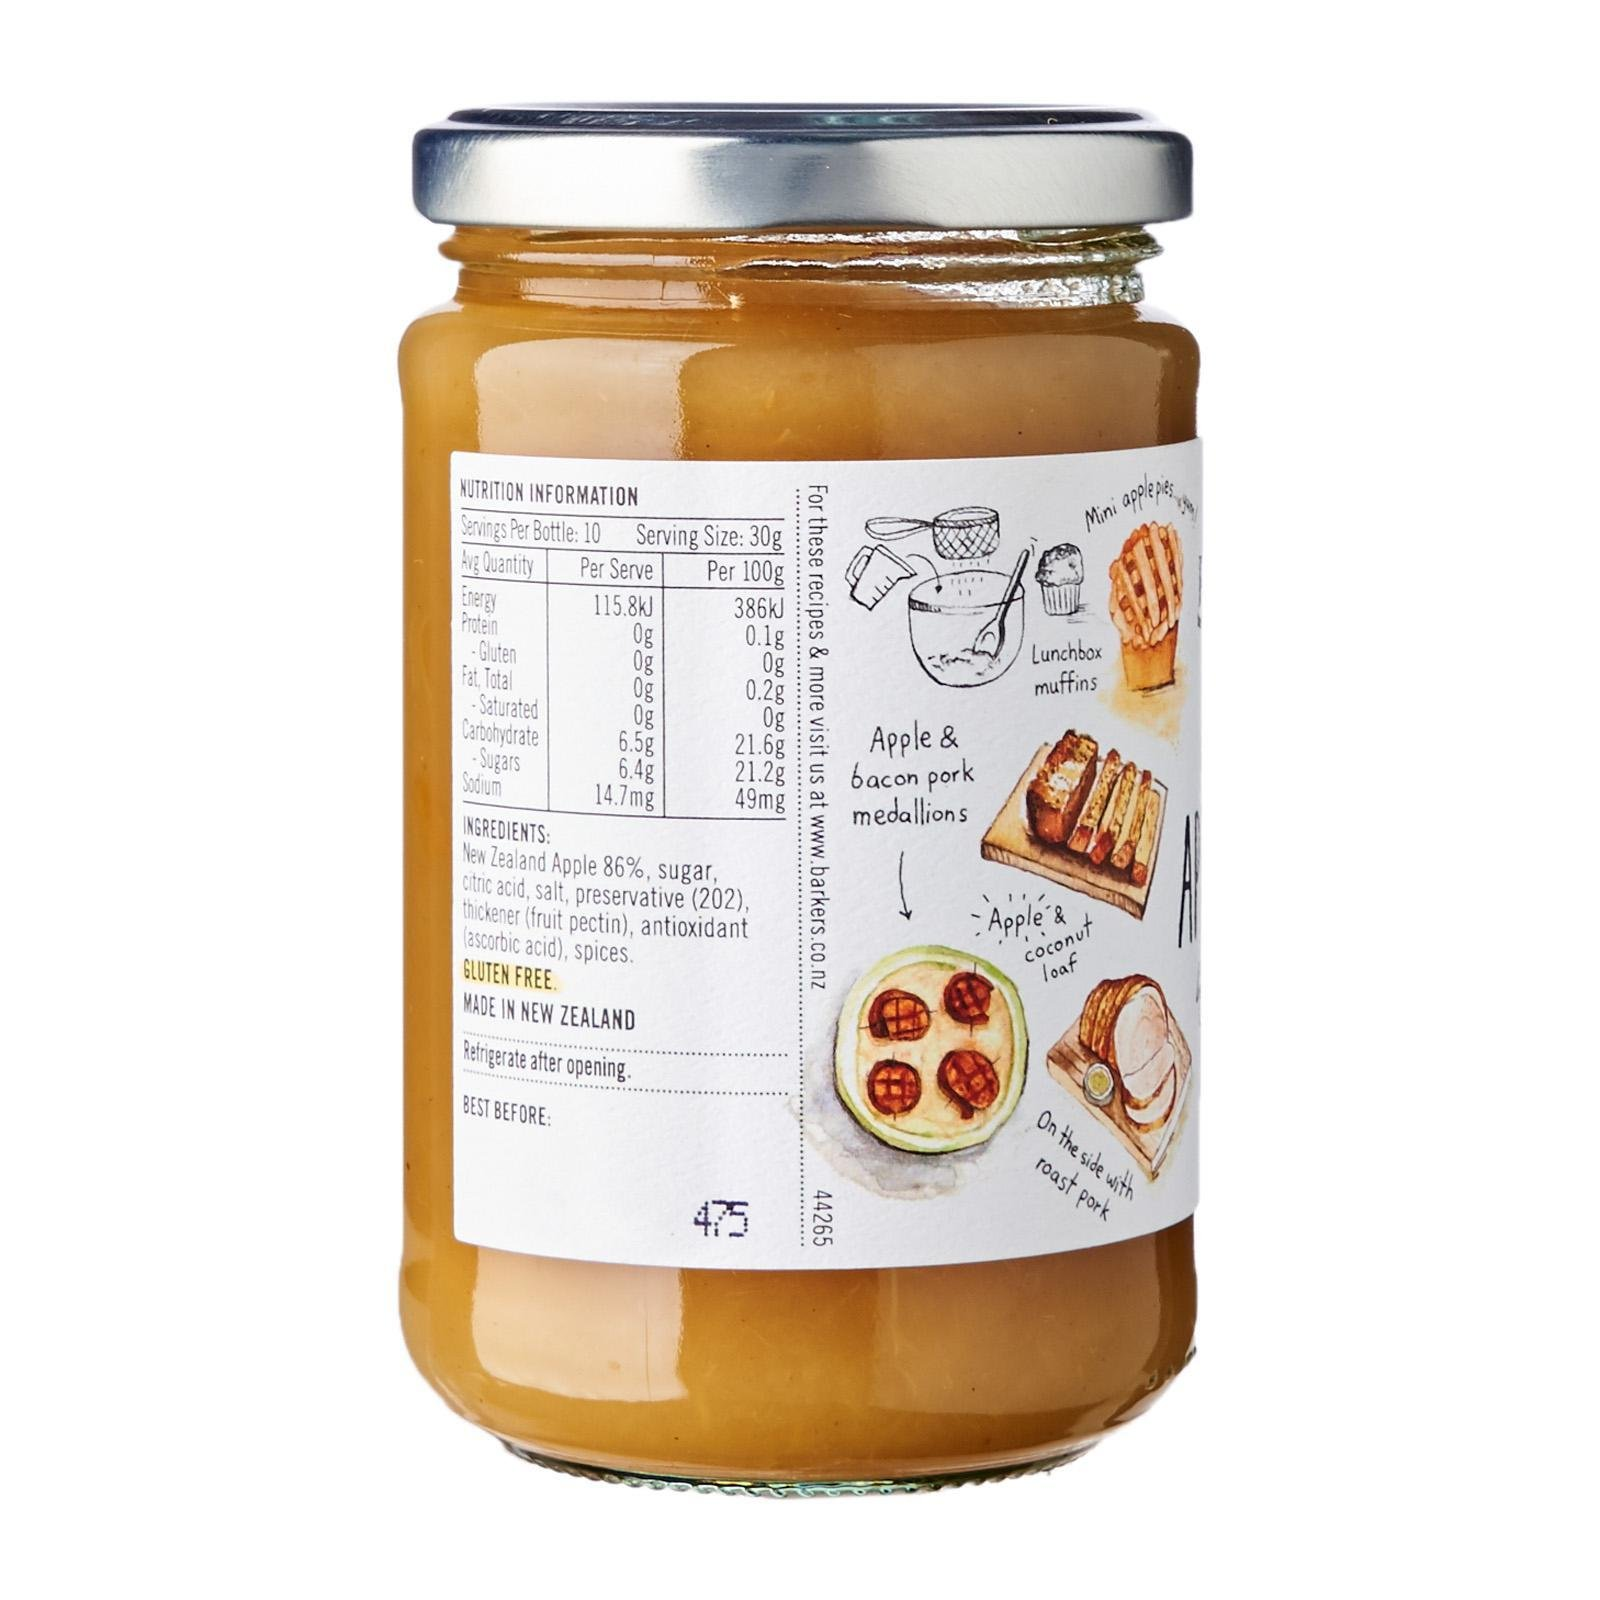 BARKER'S OF GERALDINE NZ APPLE SAUCE 310GM